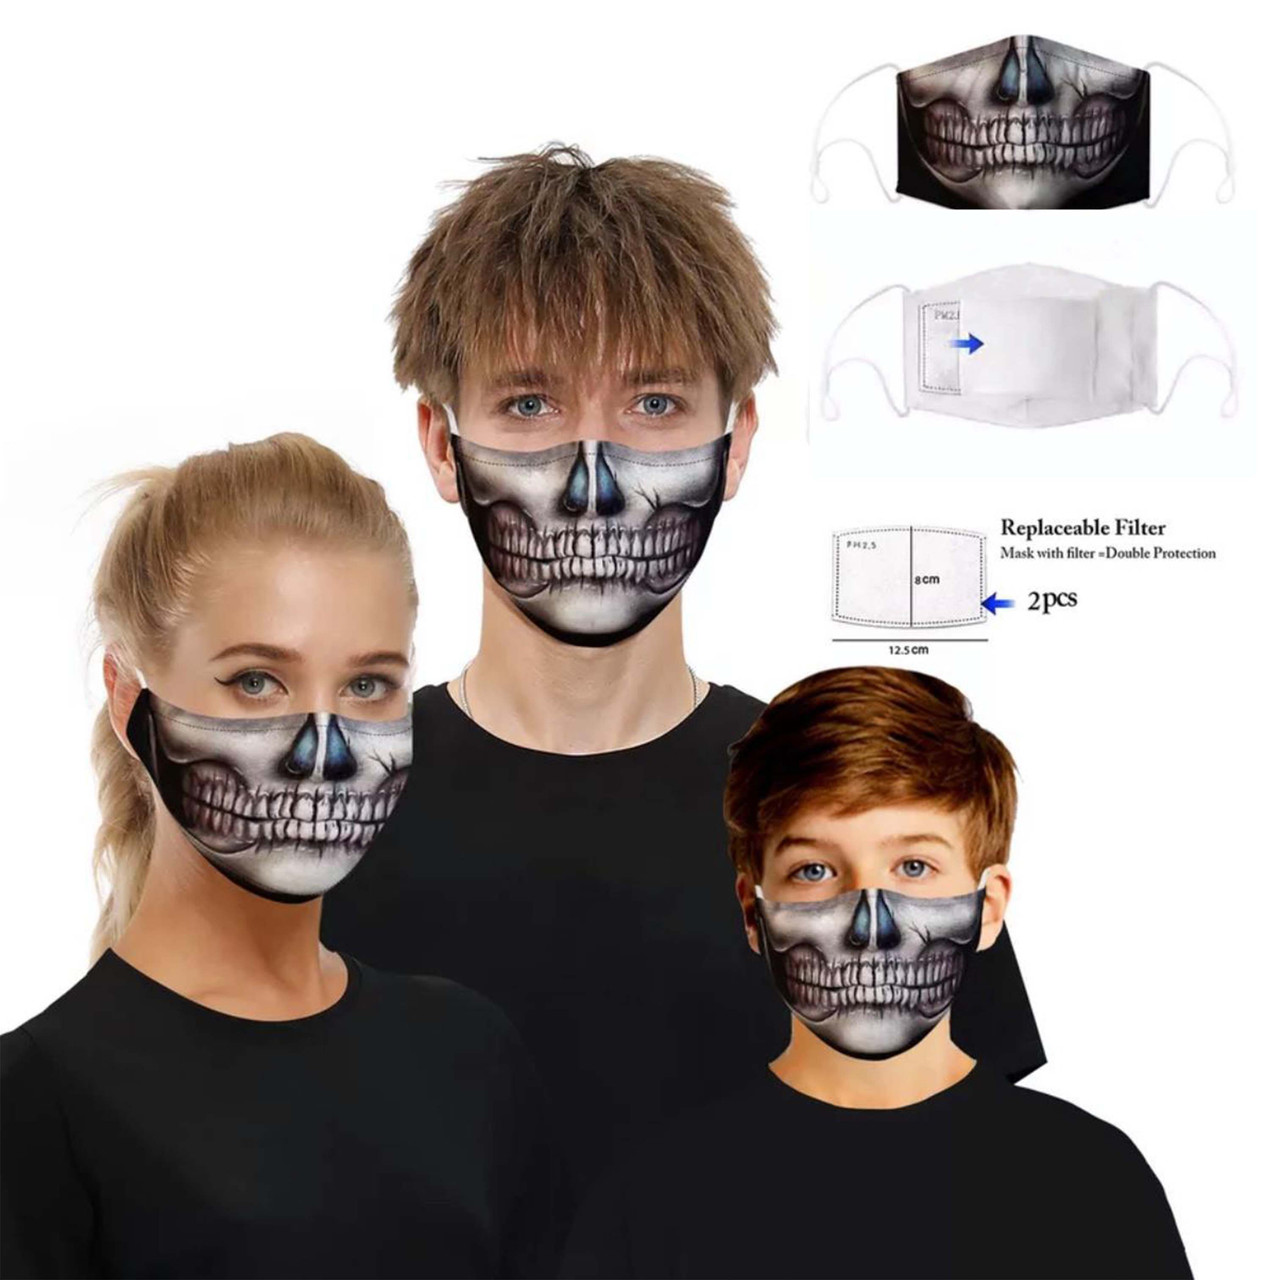 Colossal Attack On Titan Anime Face Mask With Filters Friends, we've got the ultimate solution for you. colossal attack on titan face mask with filters